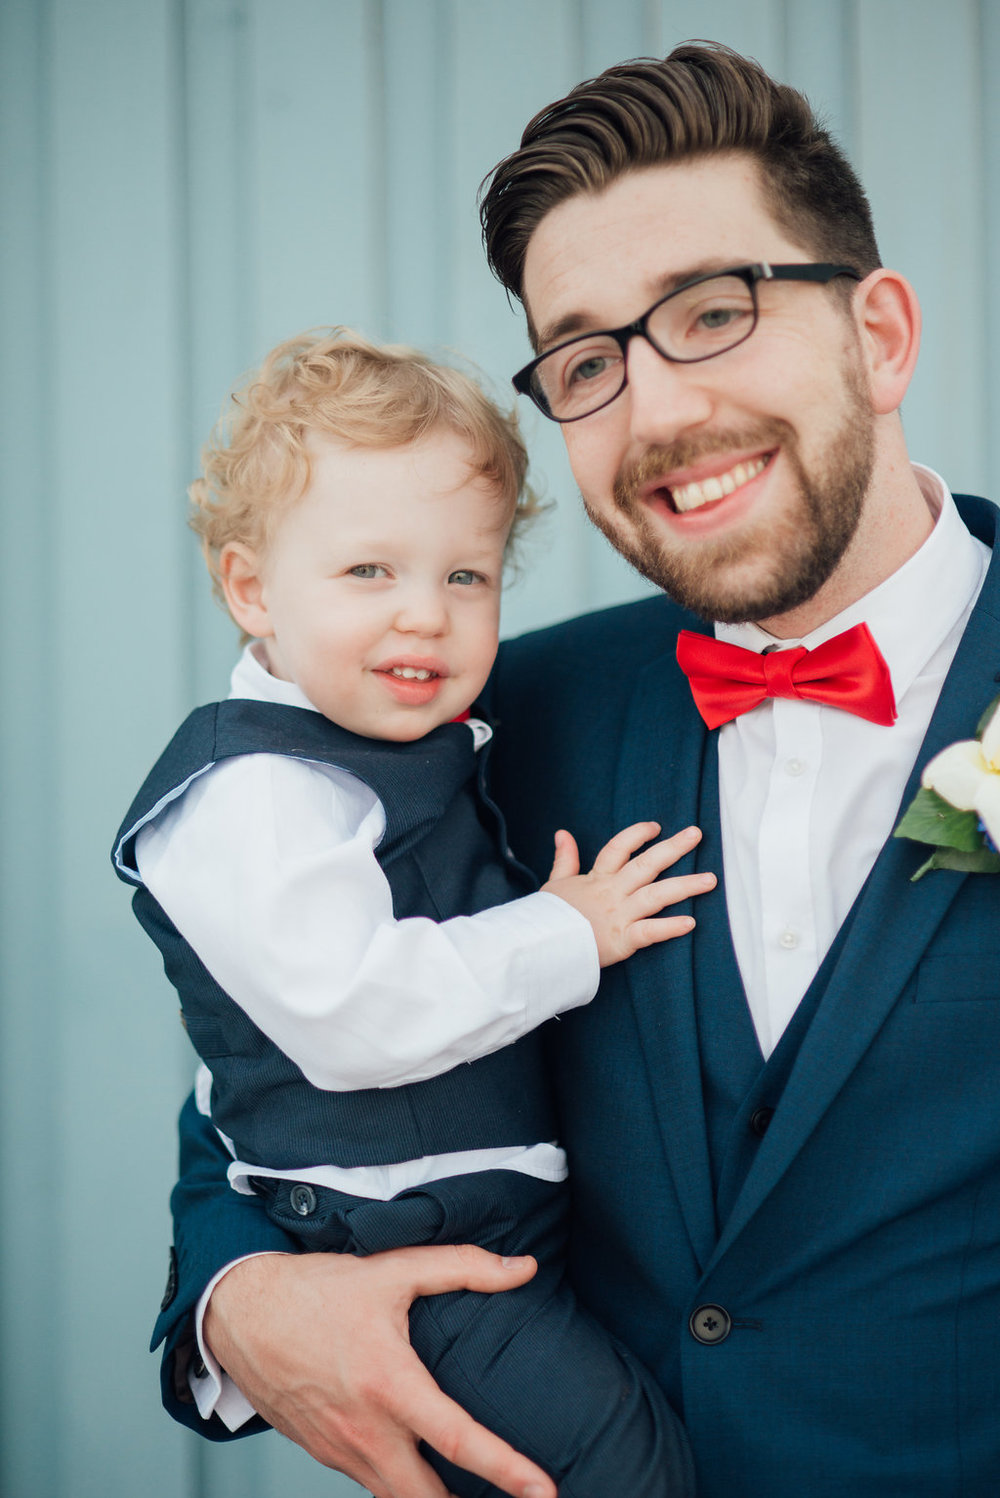 liberty-pearl-photography-cornwall-wedding-porthleven-wedding-red-and-blue-wedding-colour-palette-94